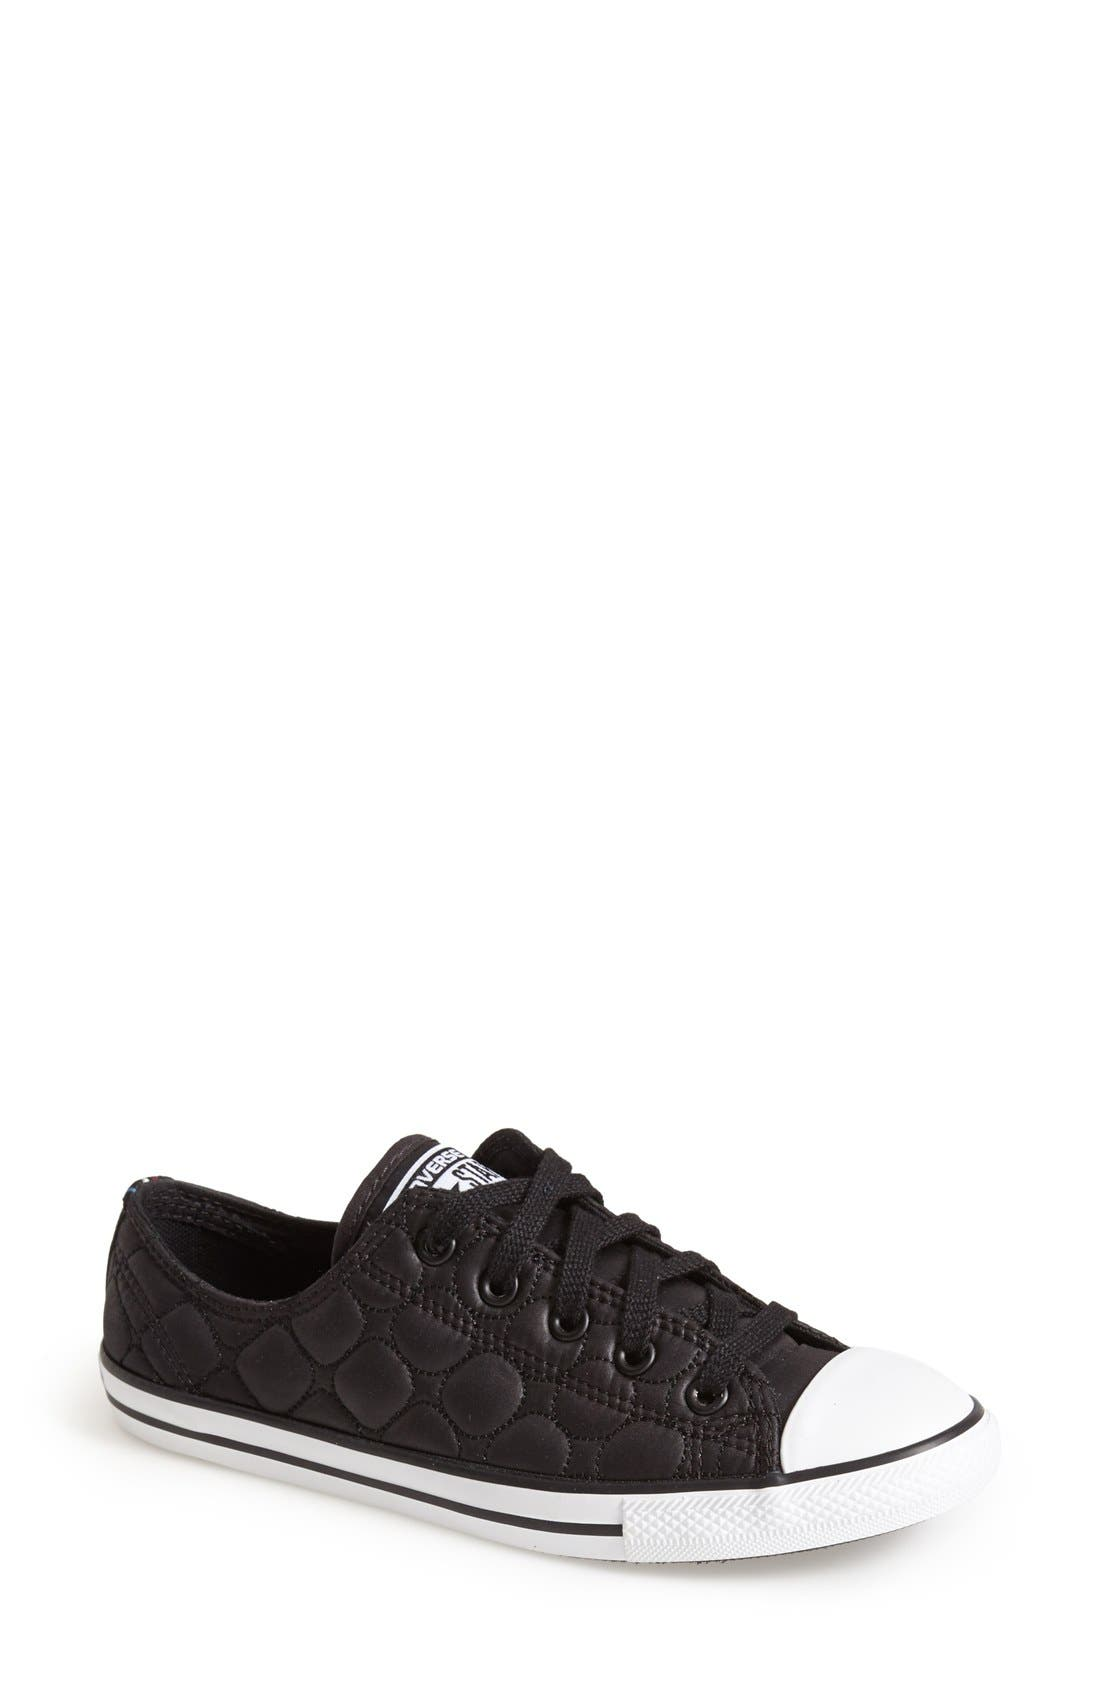 Alternate Image 1 Selected - Converse Chuck Taylor® All Star® 'Dainty' Quilted Sneaker (Women)